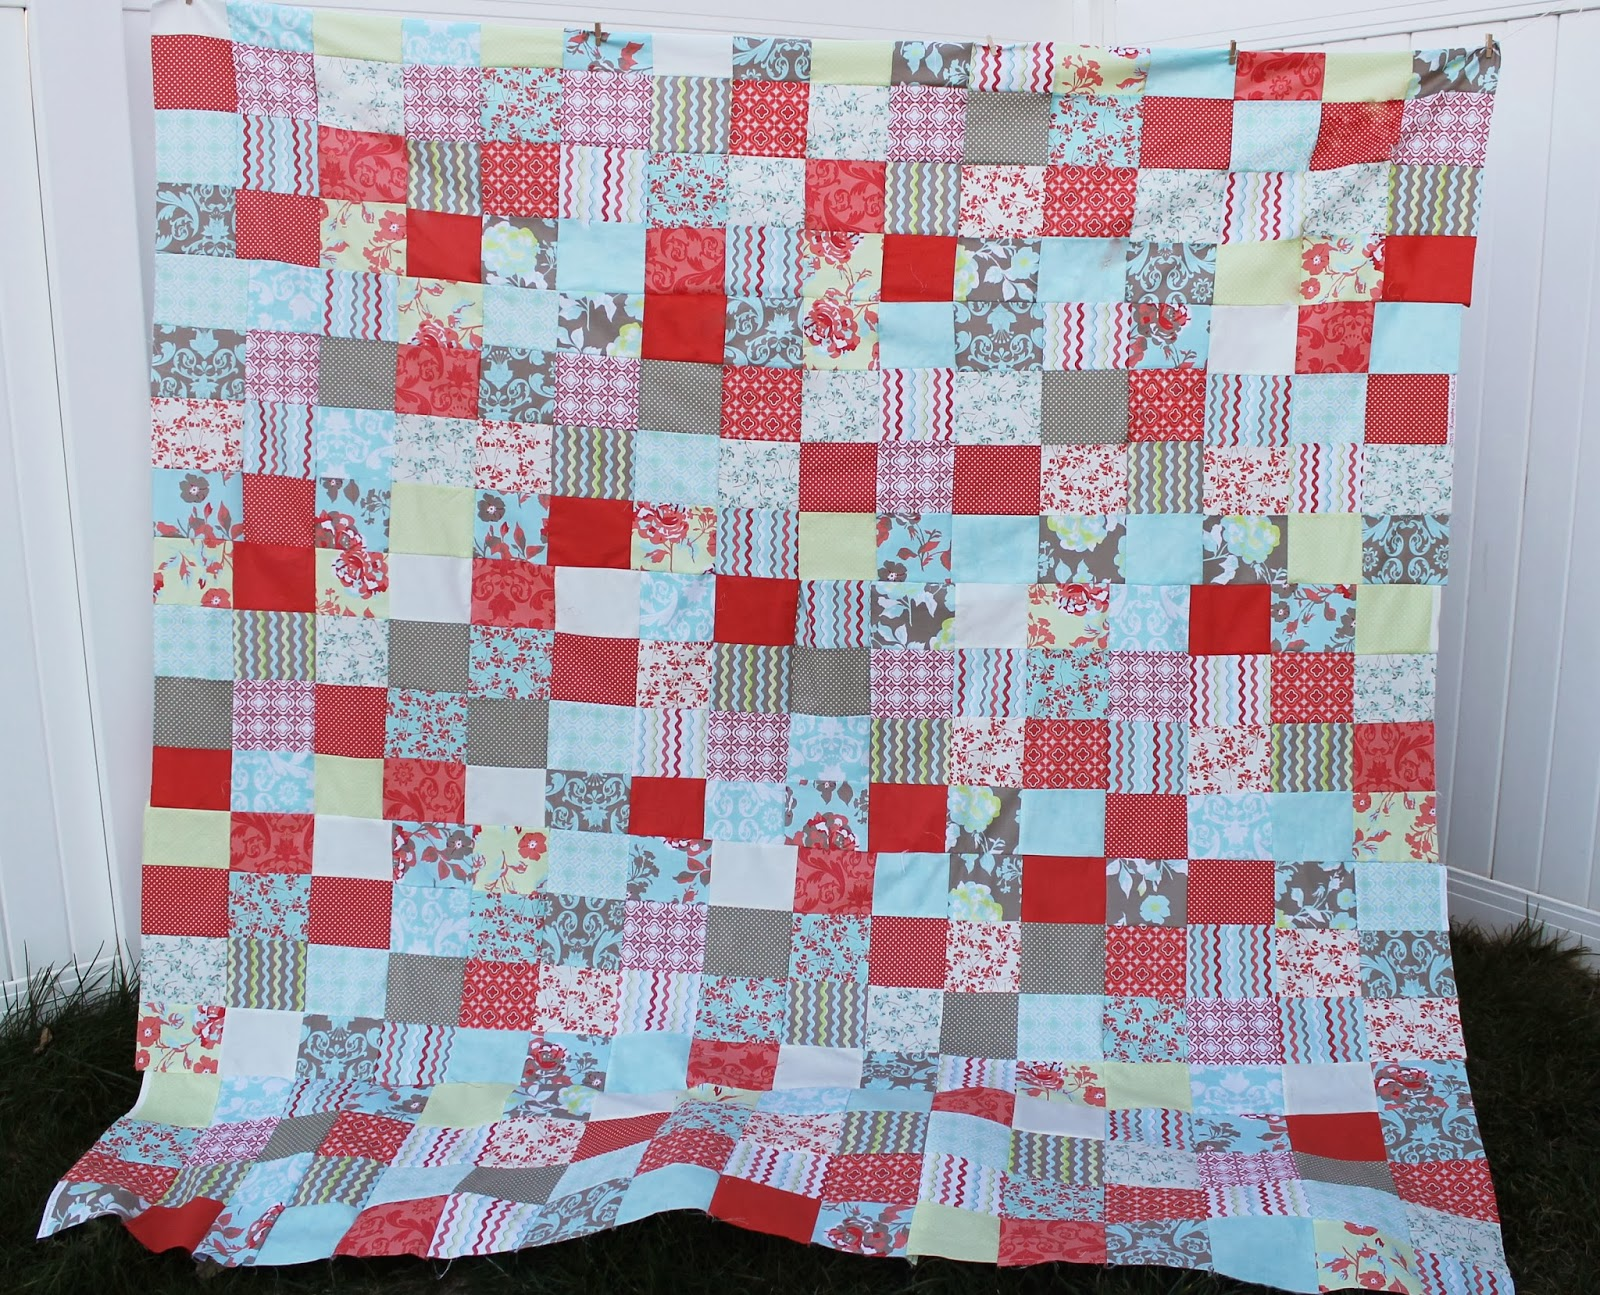 Free quilt patterns for beginners easy patchwork the stitching i am kinda proud of myself for the way it turned out love it cant beat free quilt patterns for beginners take a look at the finished quilt here jeuxipadfo Gallery